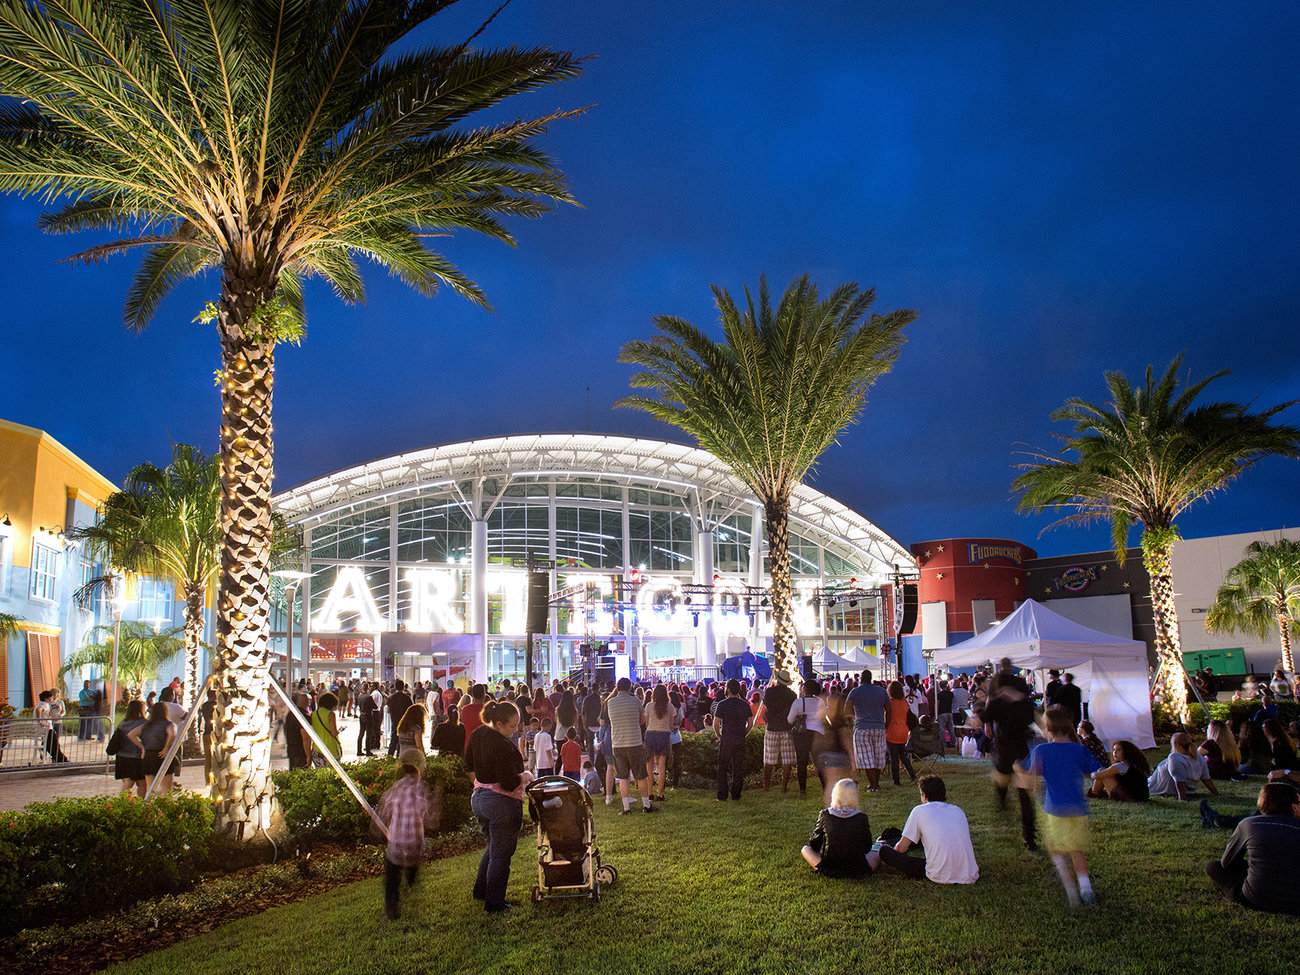 Artegon Marketplace Shopping Center in Orlando